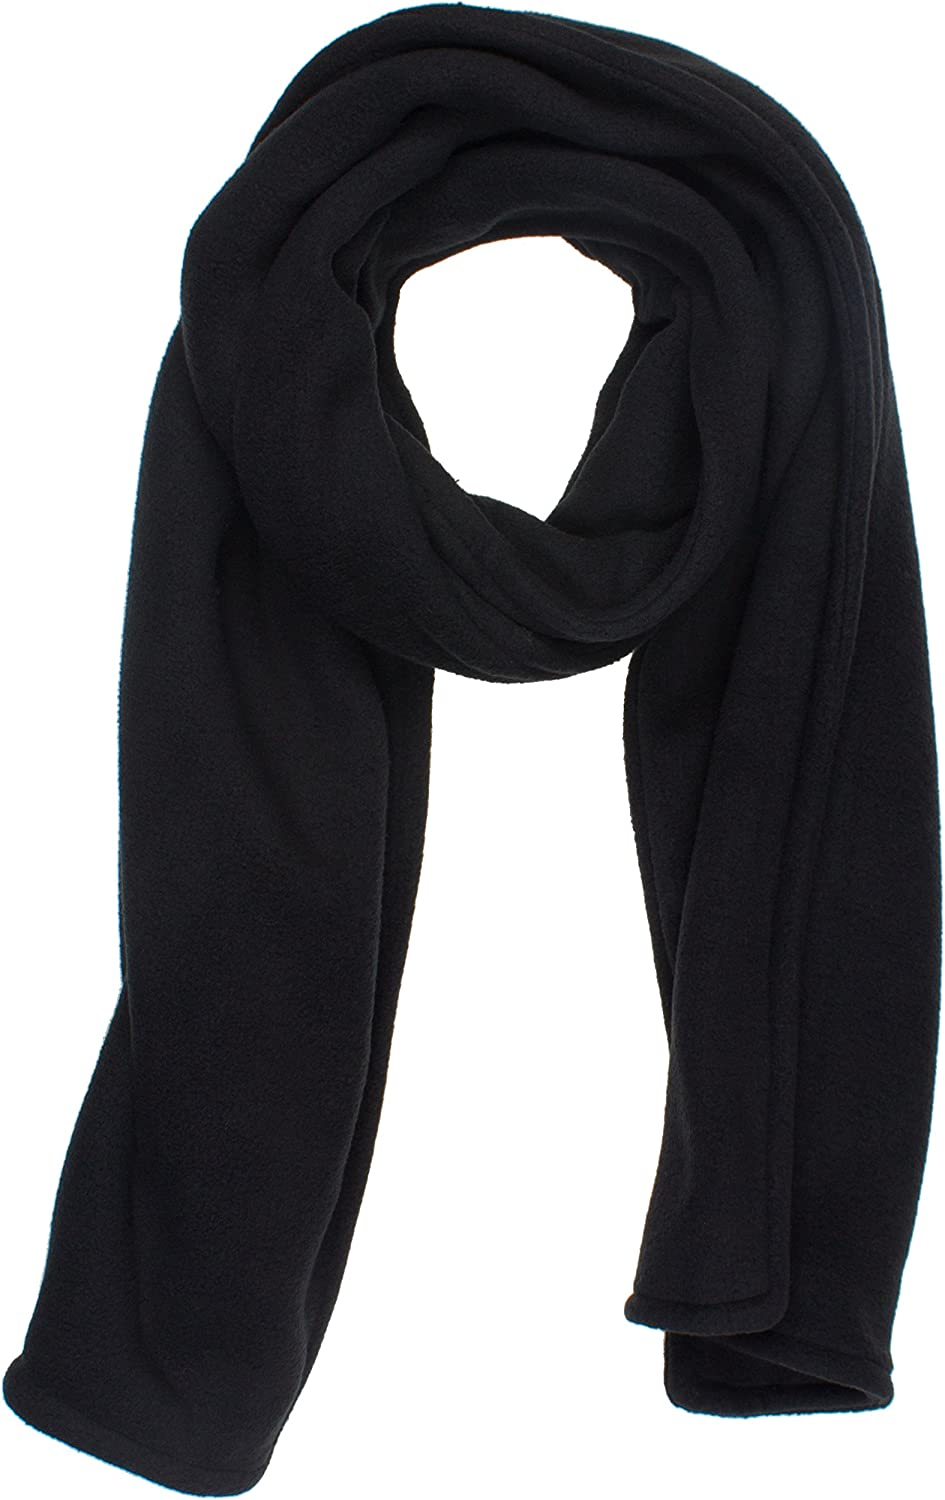 DRY77 Thick Double Layer Long Thermal Soft Fleece Winter Scarf